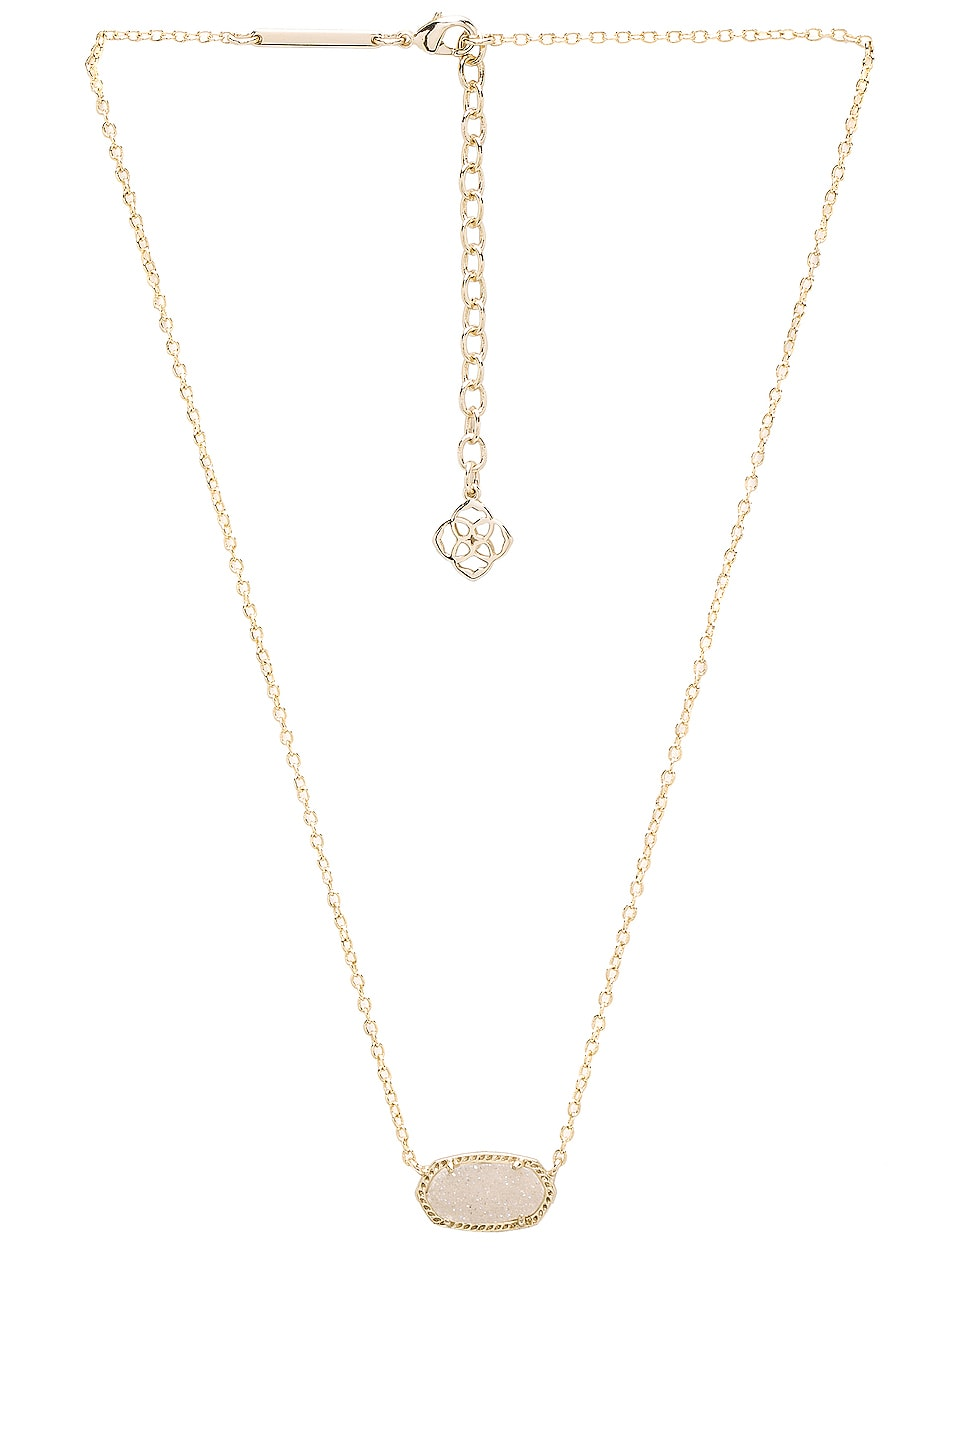 Kendra Scott Elisa Necklace in Gold Iridescent & Drusy